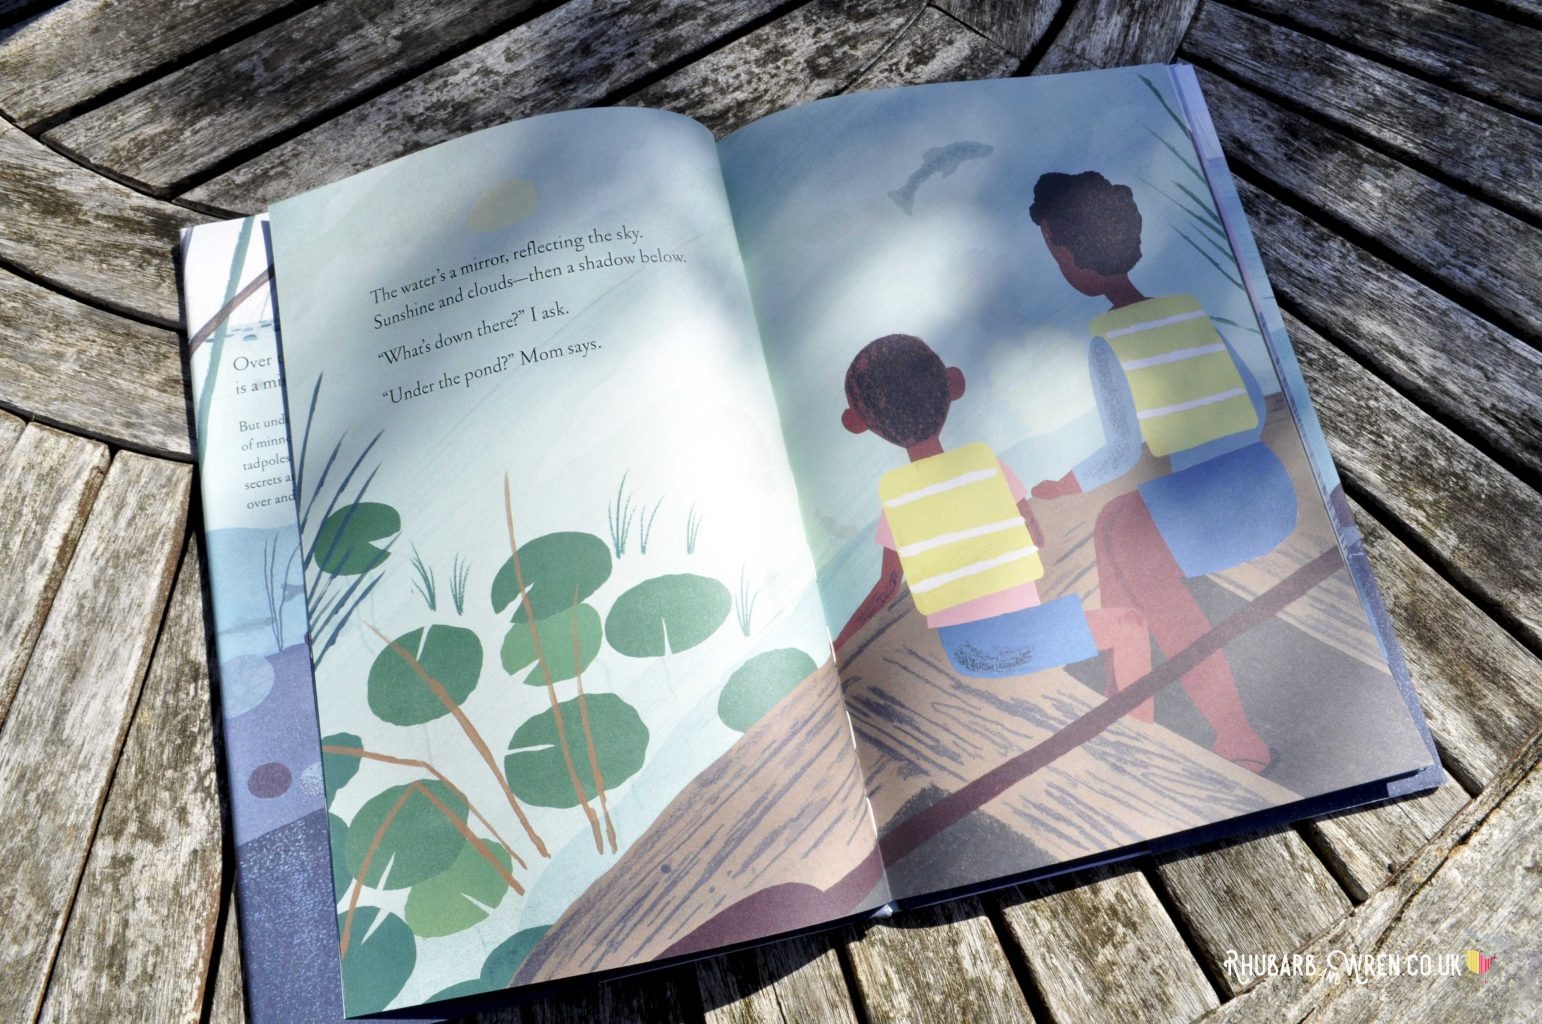 Page from Over and Under the Pond - a boy and his mother looking into the water